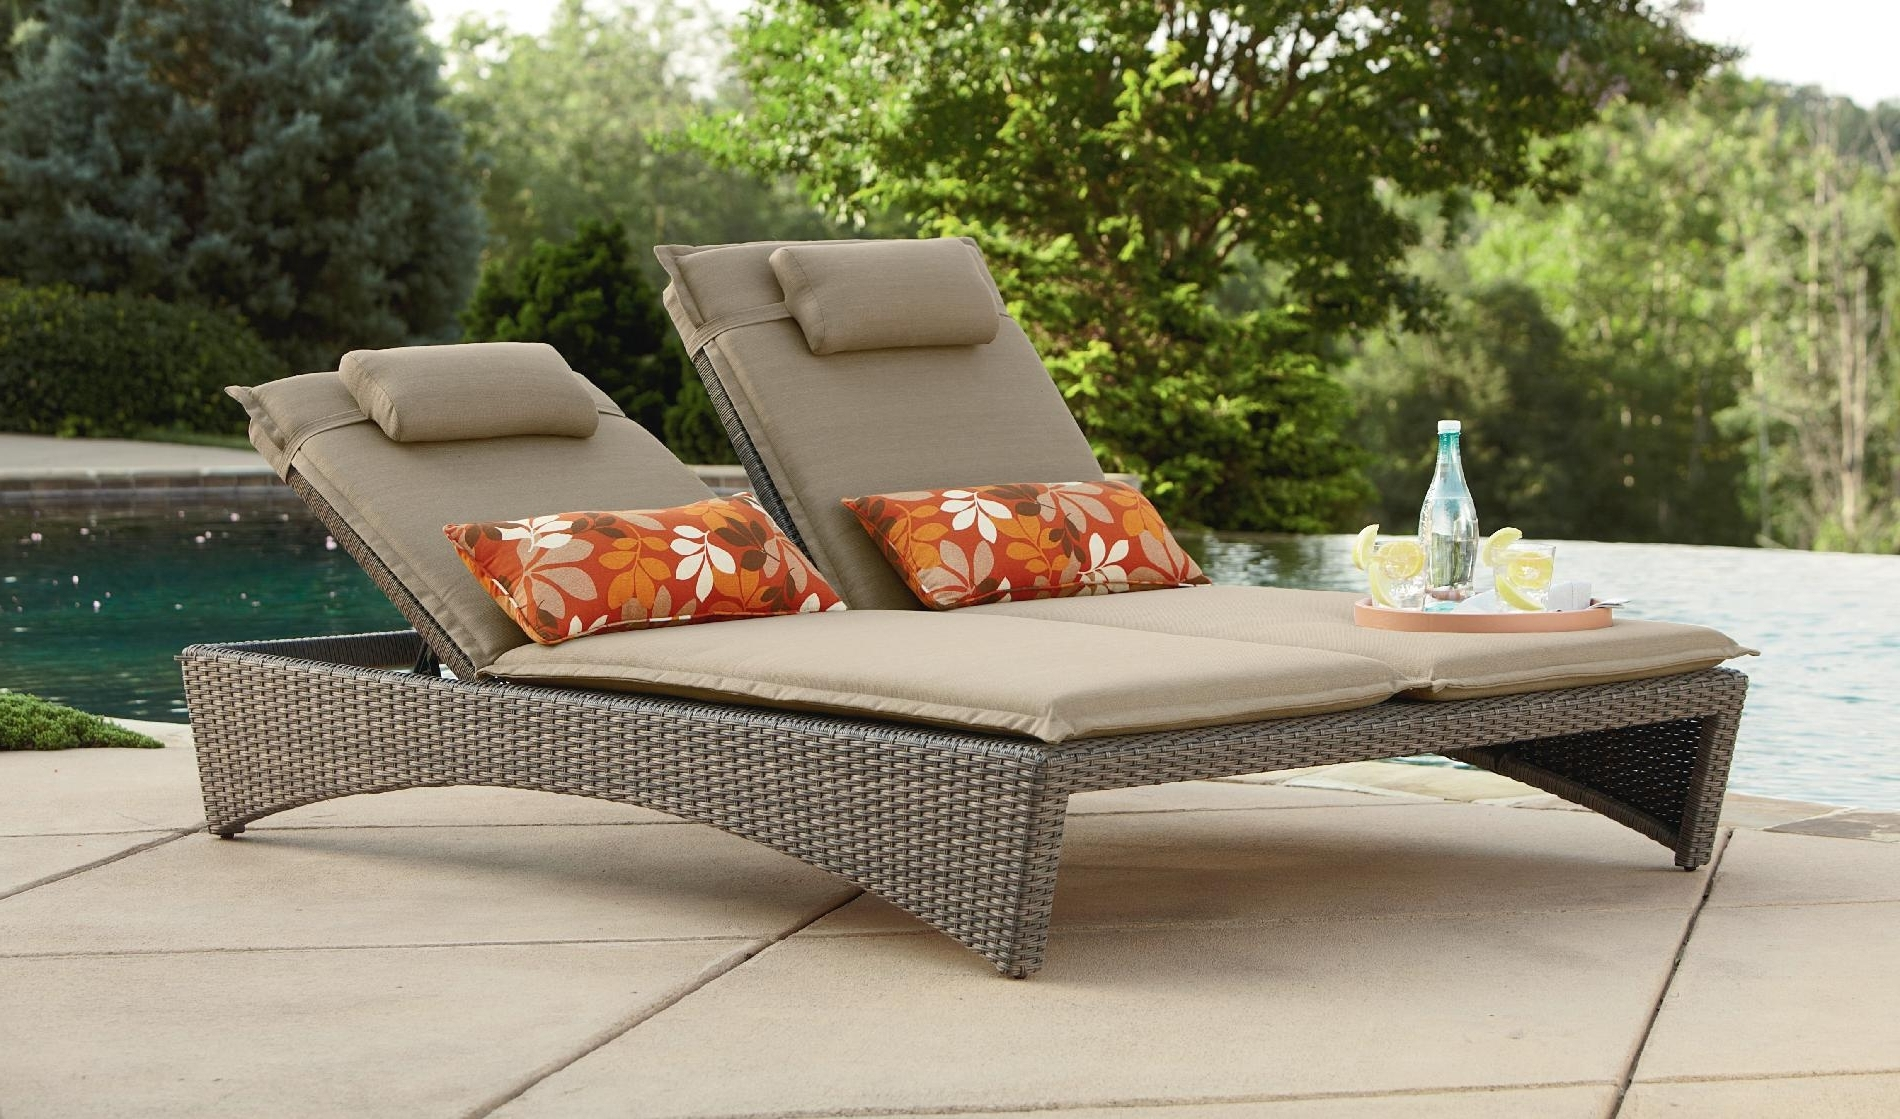 Patio Furniture Chaise Lounges In Well Known Sears Chaise Lounge Chairs Patio Furniture • Lounge Chairs Ideas (View 12 of 15)